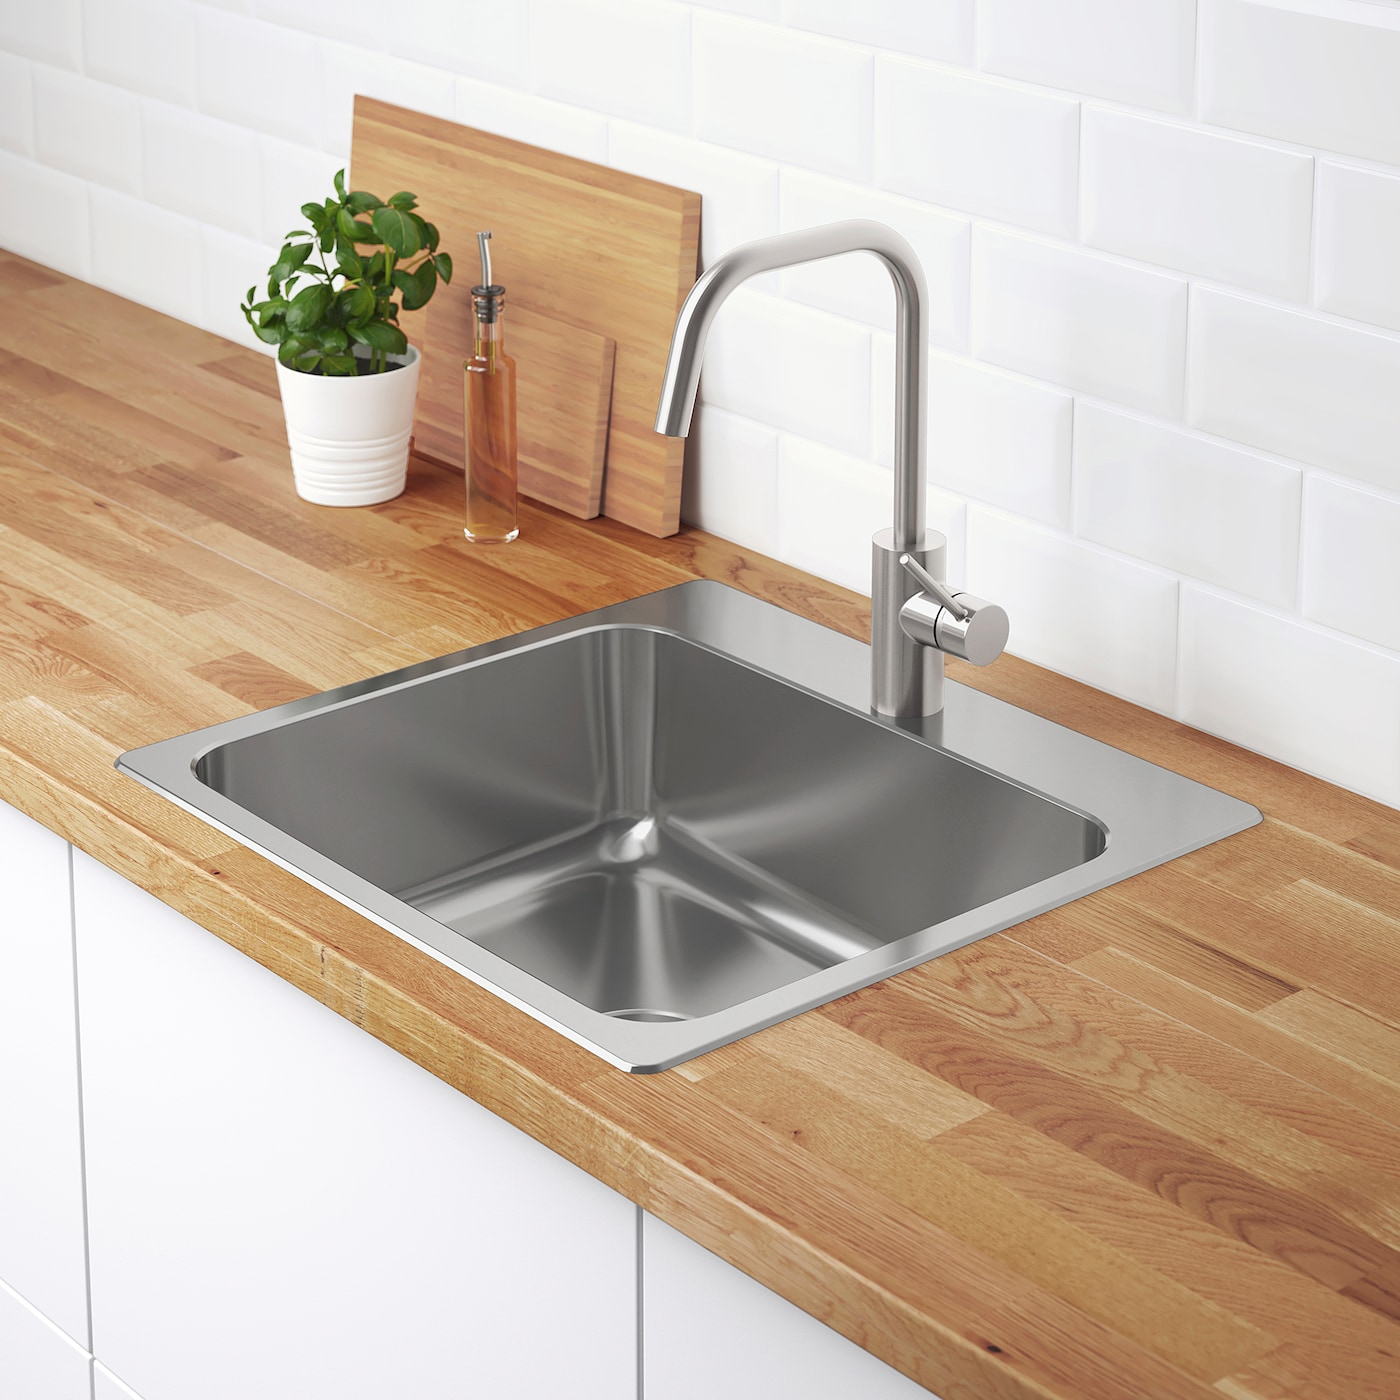 Inset Sink 1 Bowl Stainless Steel